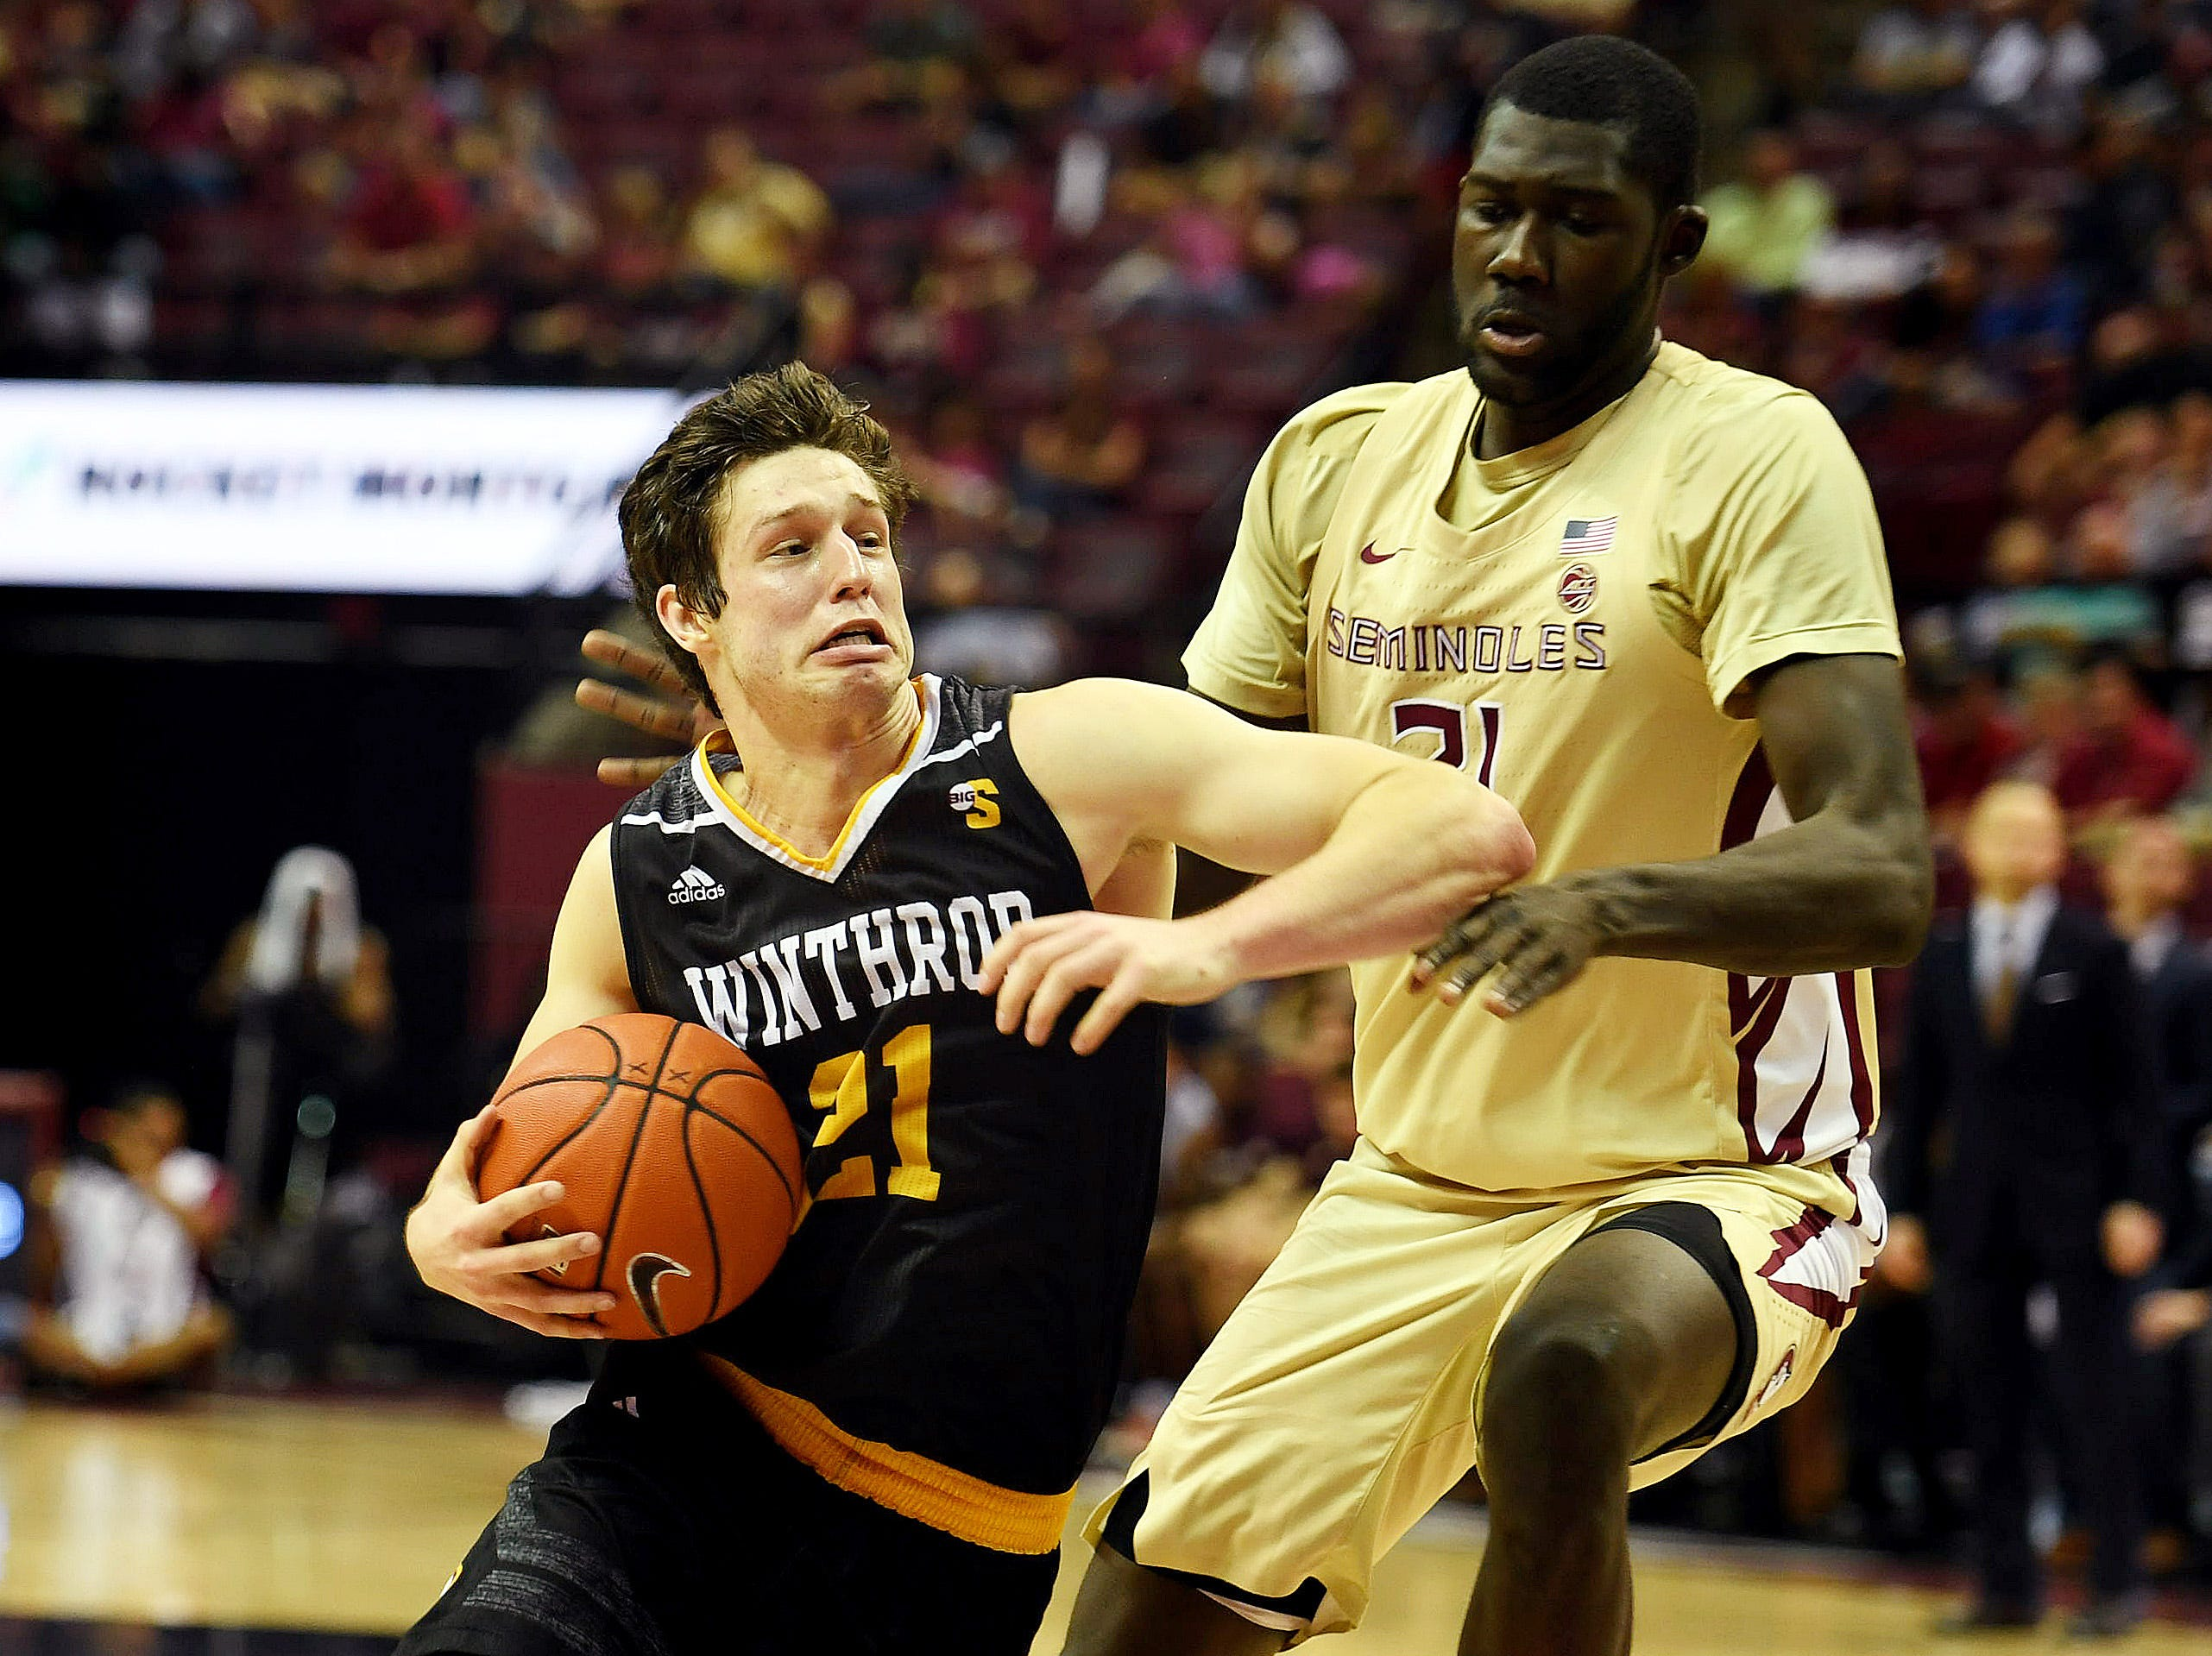 Jan 1, 2019; Tallahassee, FL, USA; Winthrop Eagles guard Kyle Zunic (21) dribbles the ball around Florida State Seminoles center Christ Koumadje (21) during the first half at Donald L. Tucker Center. Mandatory Credit: Melina Myers-USA TODAY Sports